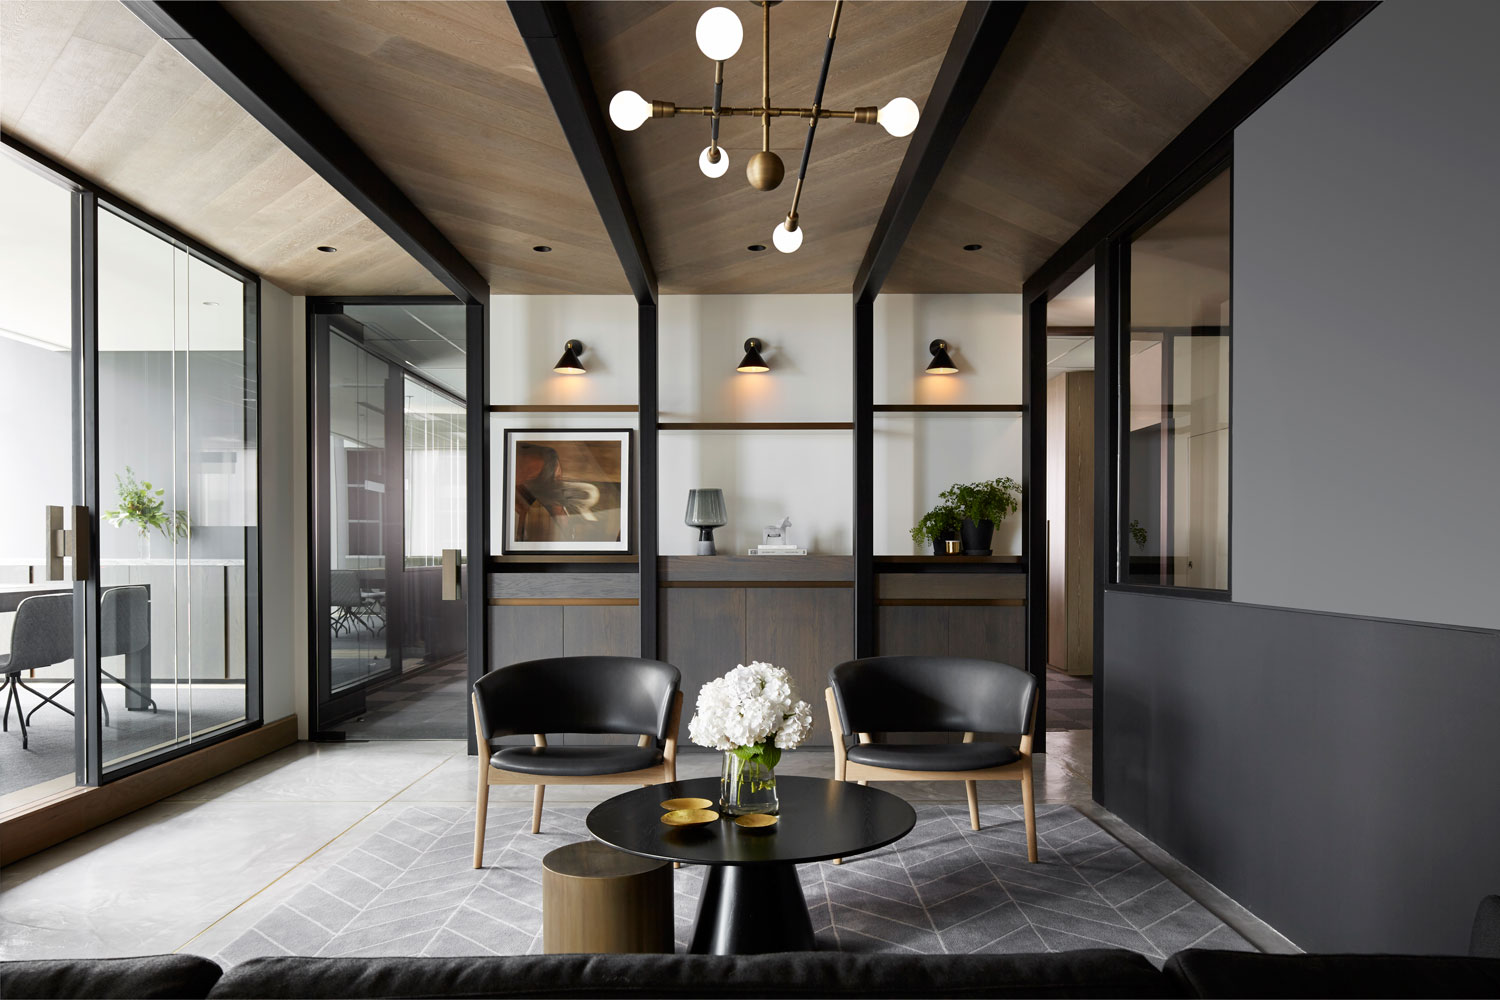 Mim-Design-by-Pask-Office-Project-Yellowtrace-01.jpg